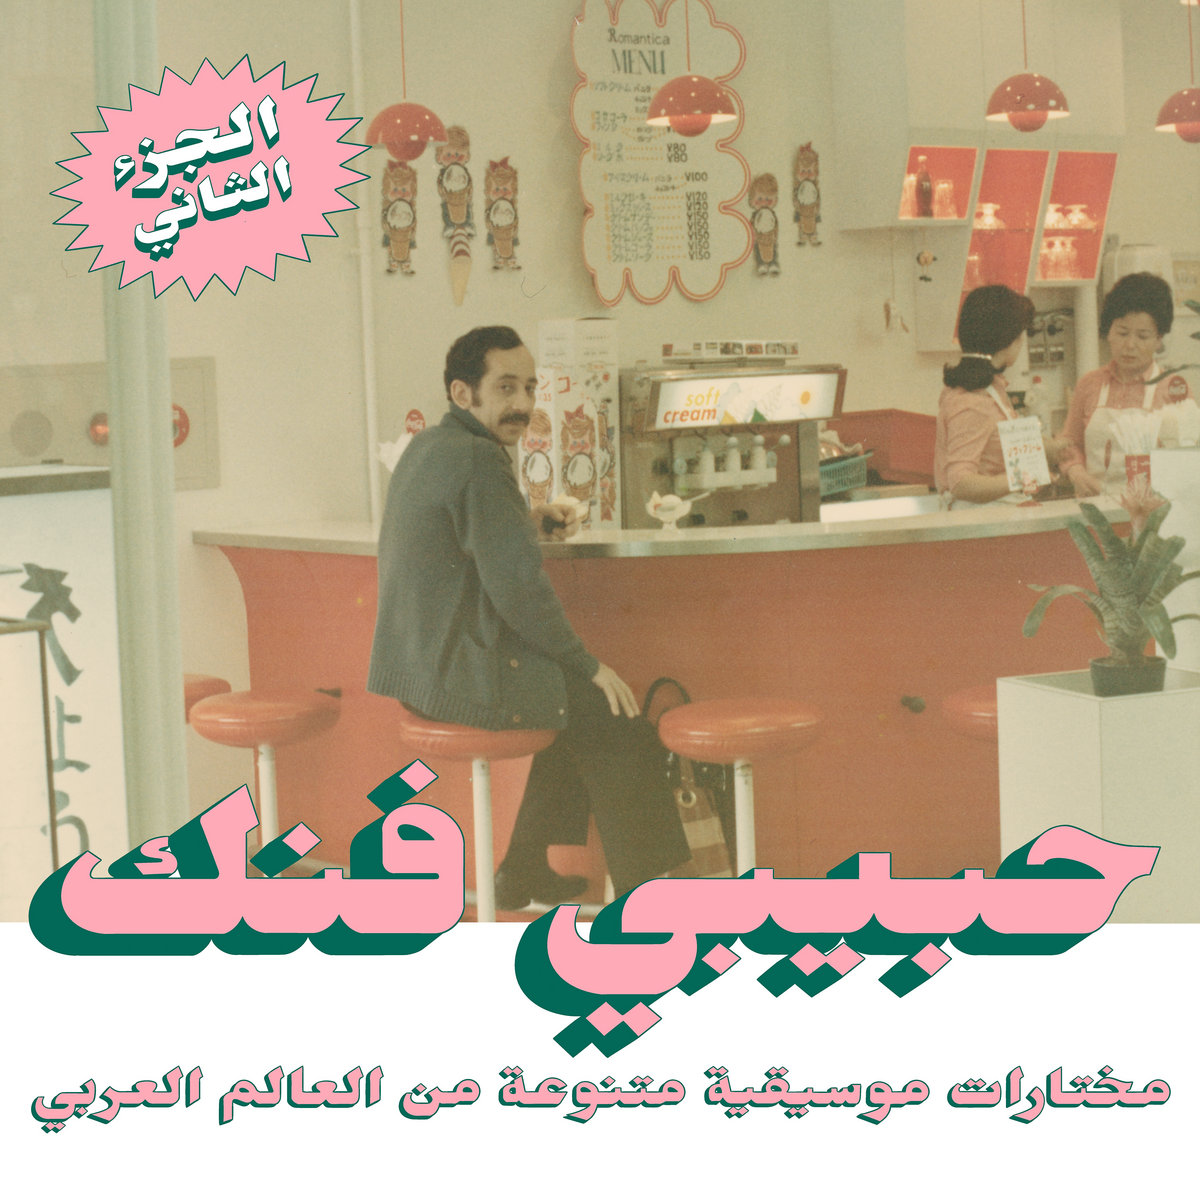 Habibi Funk - An Eclectic Selection Of Music From The Arab World, Part 2